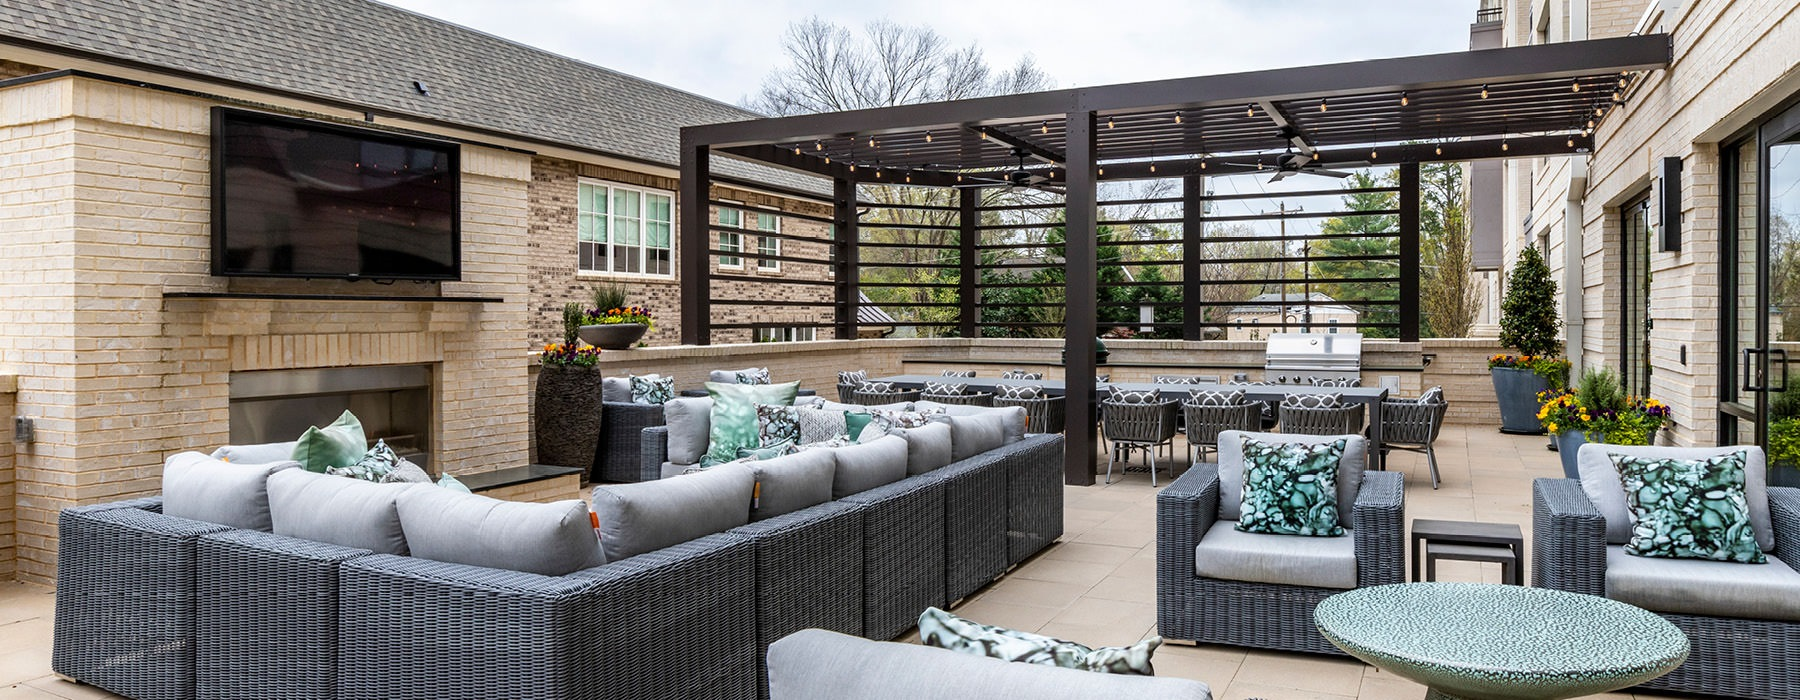 Outdoor grills with dining tables and fireplace.